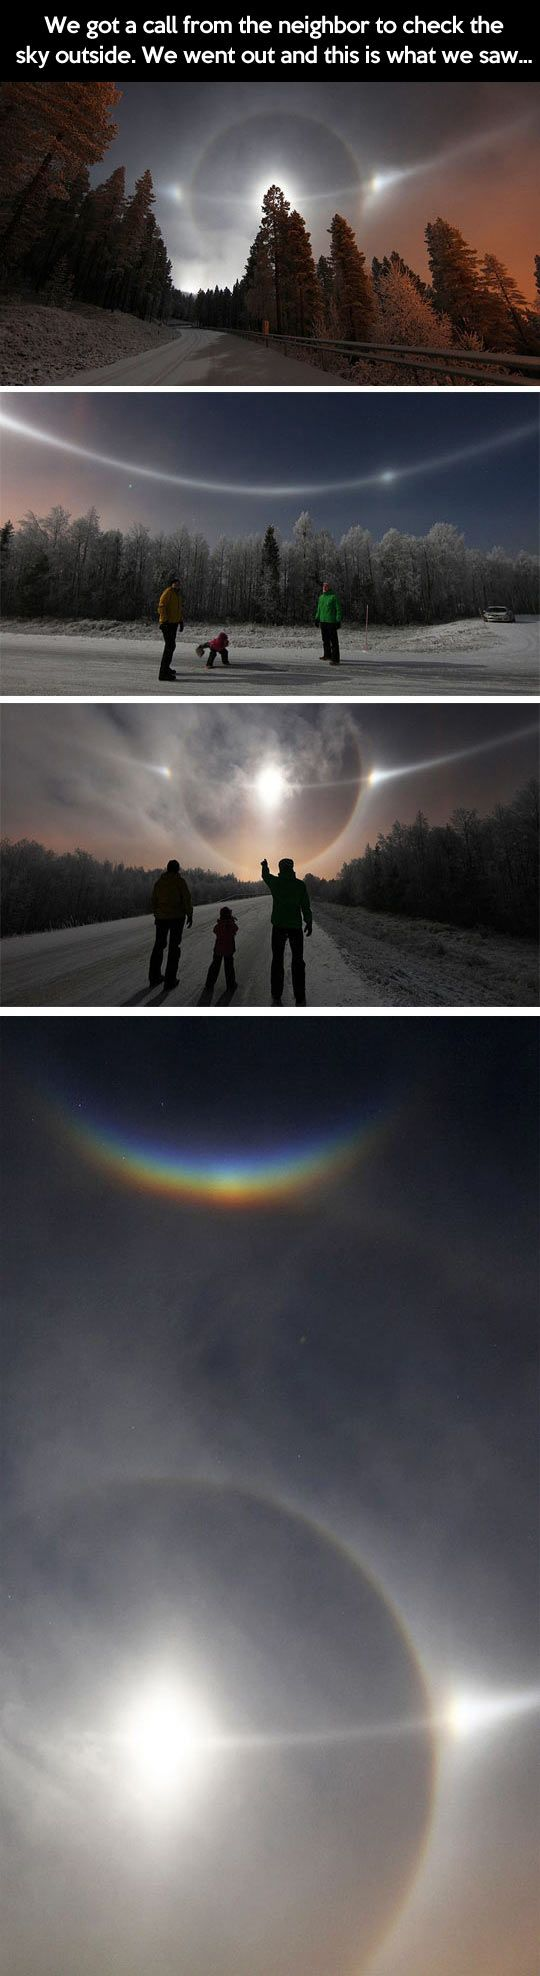 Very unusual sky // funny pictures - funny photos - funny images - funny pics - funny quotes - #lol #humor #funnypictures